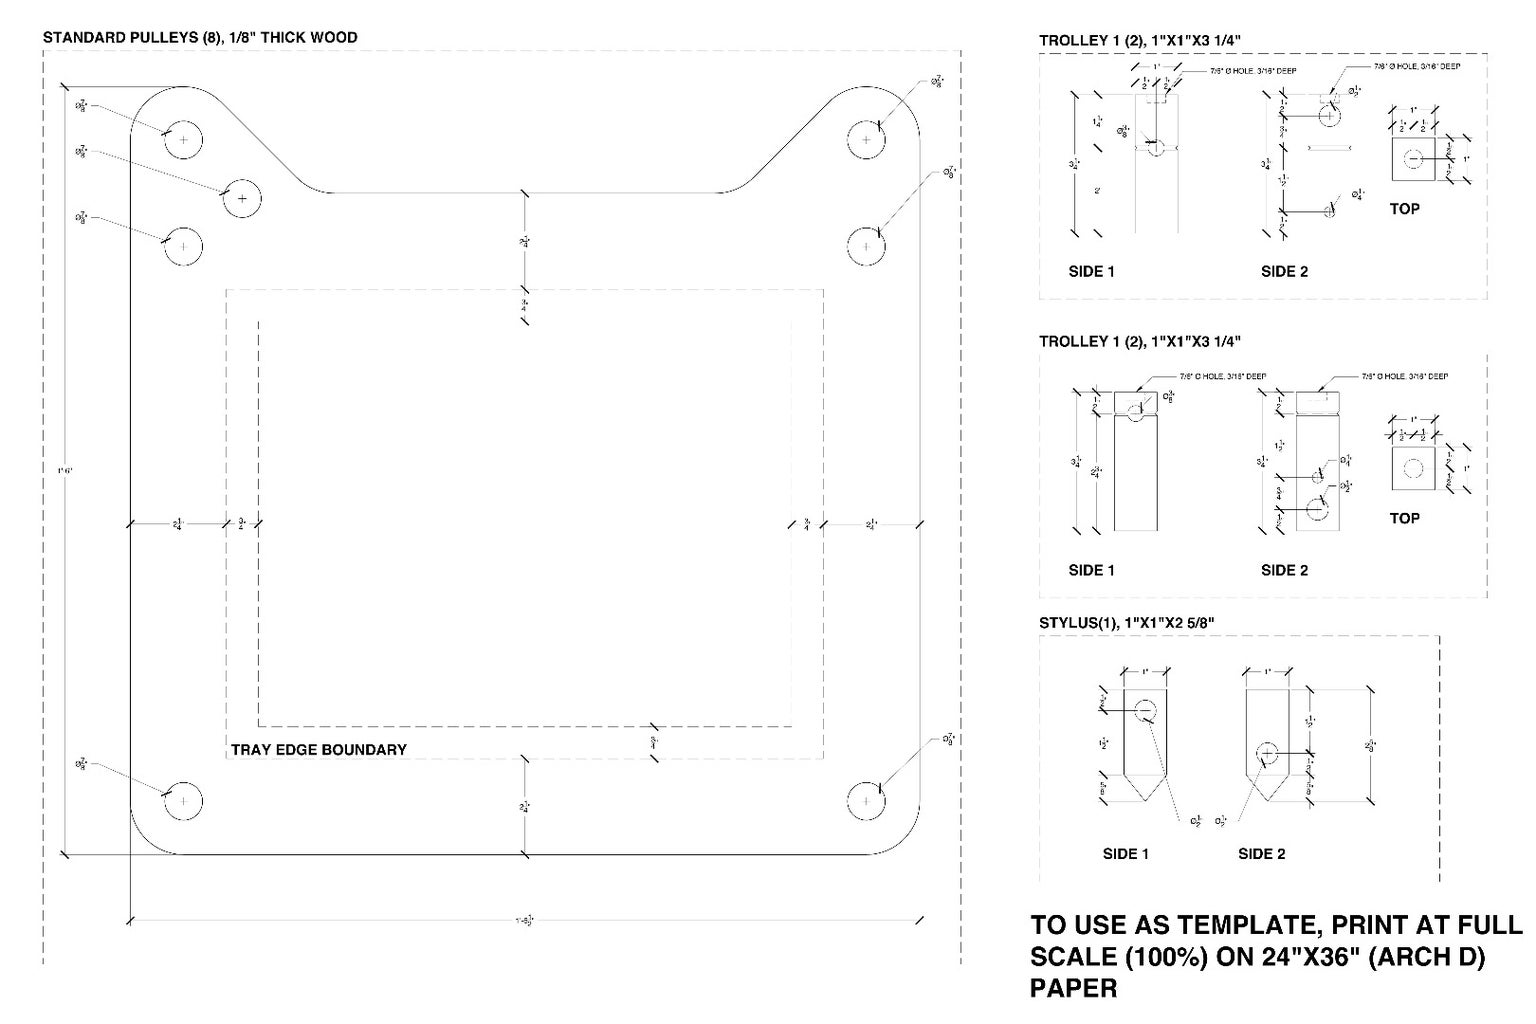 Shop Drawings and Fabrication